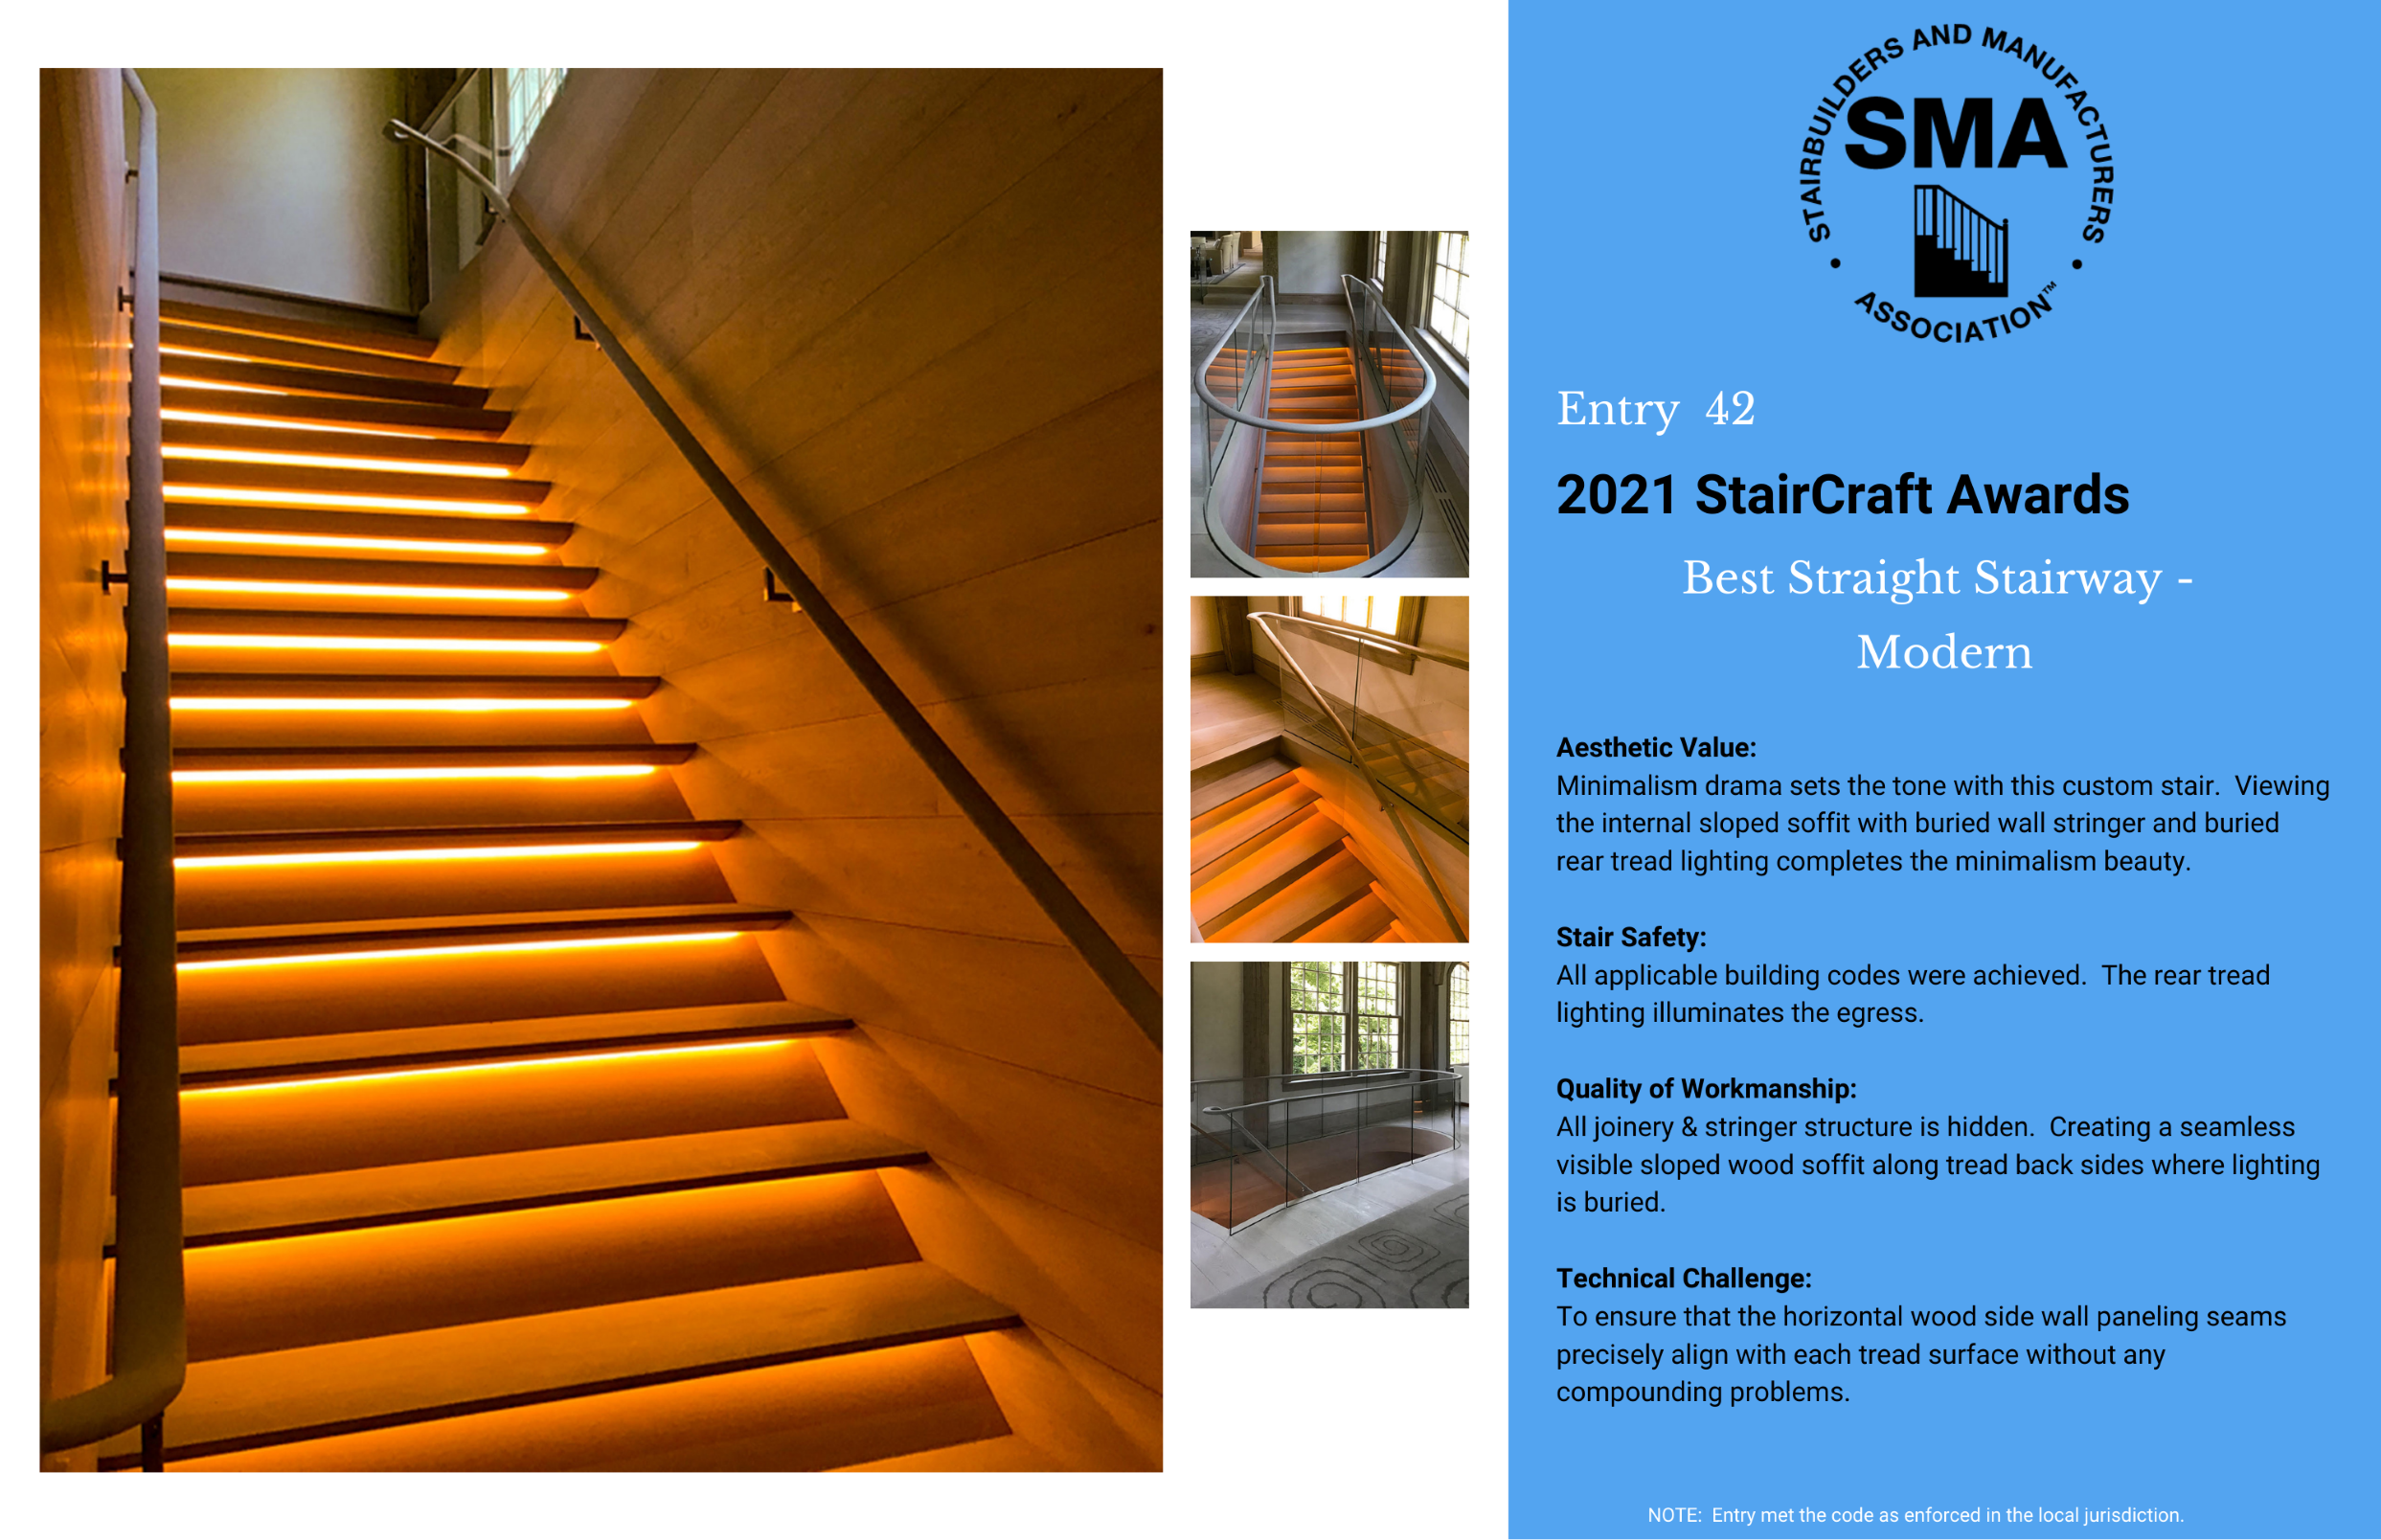 2021 StairCraft Awards Entry 42